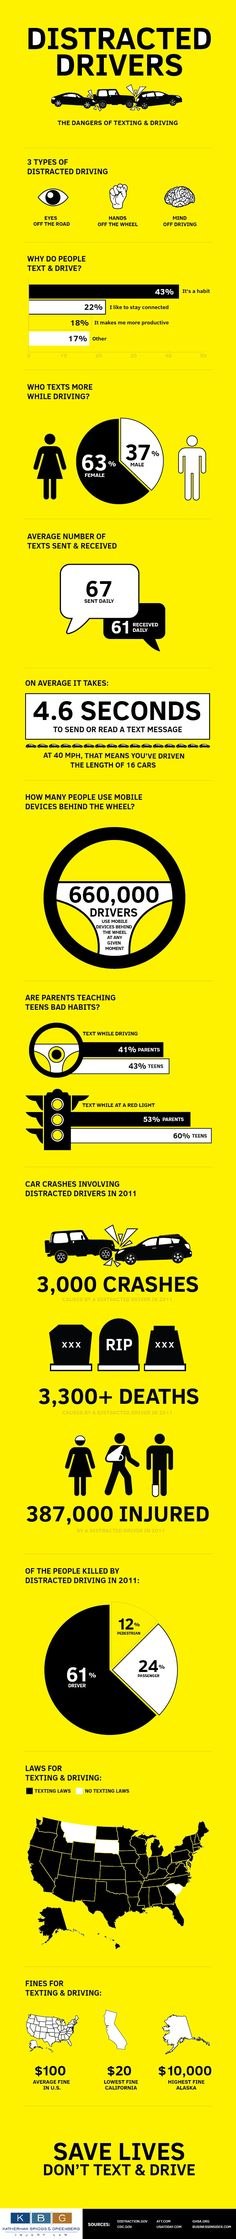 660,000 drivers are using mobile devices at any given moment. That's 660,000 too many - yikes. #Distracted Drivers